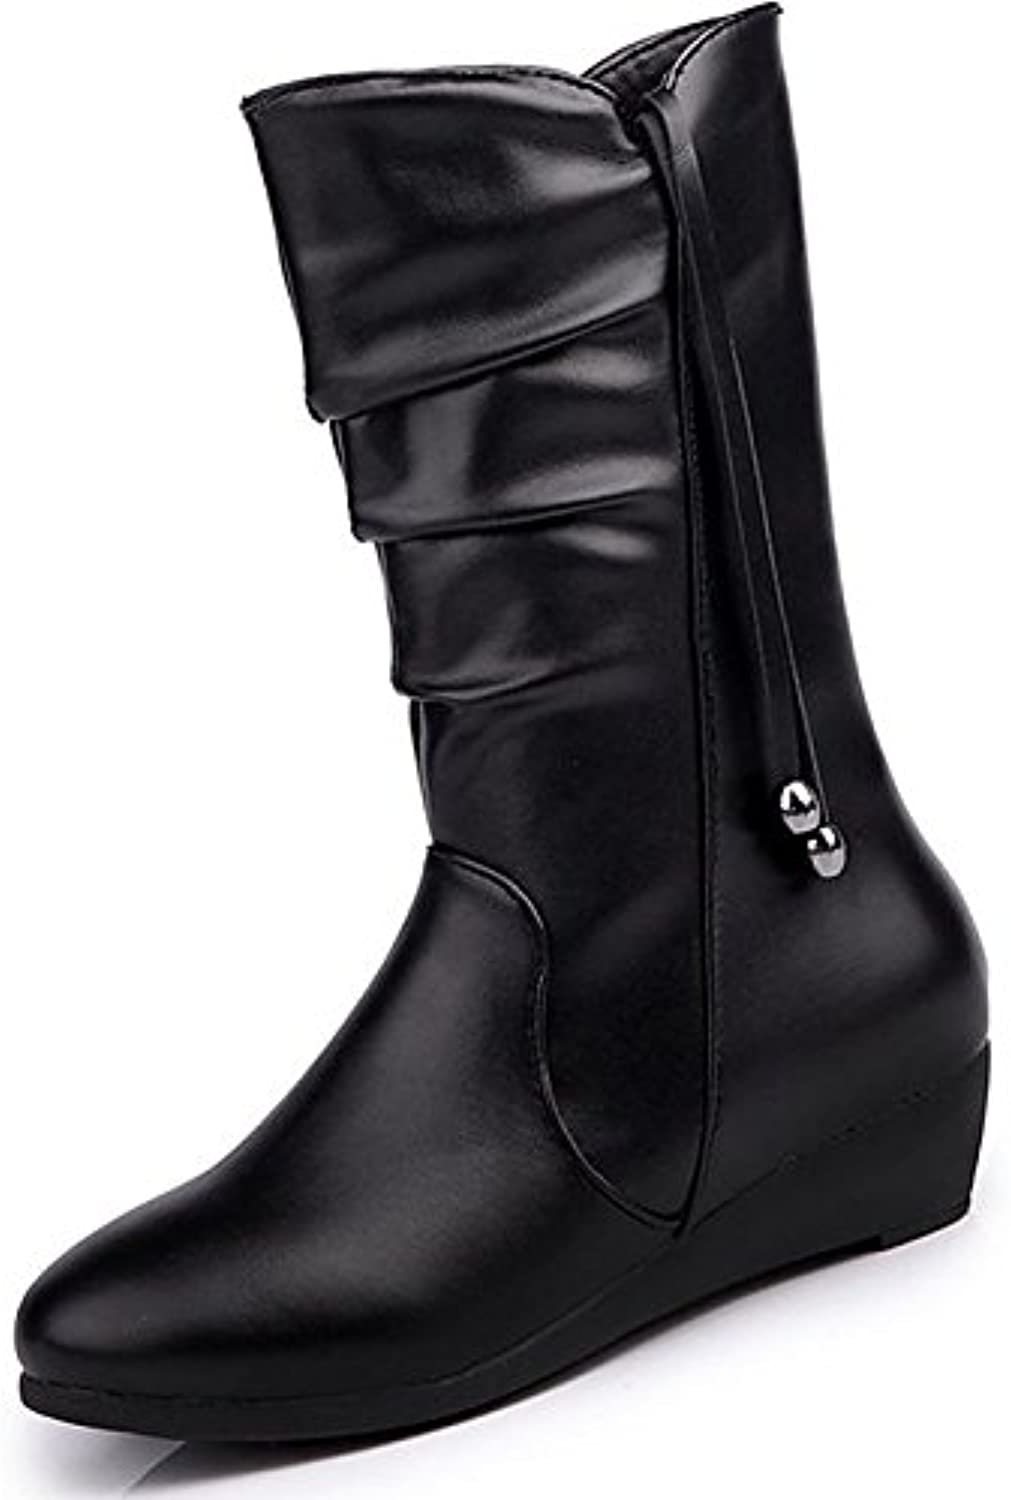 HSXZ Women's shoes PU Winter Comfort Boots Null Flat Round Toe MidCalf Boots   for Outdoor Black